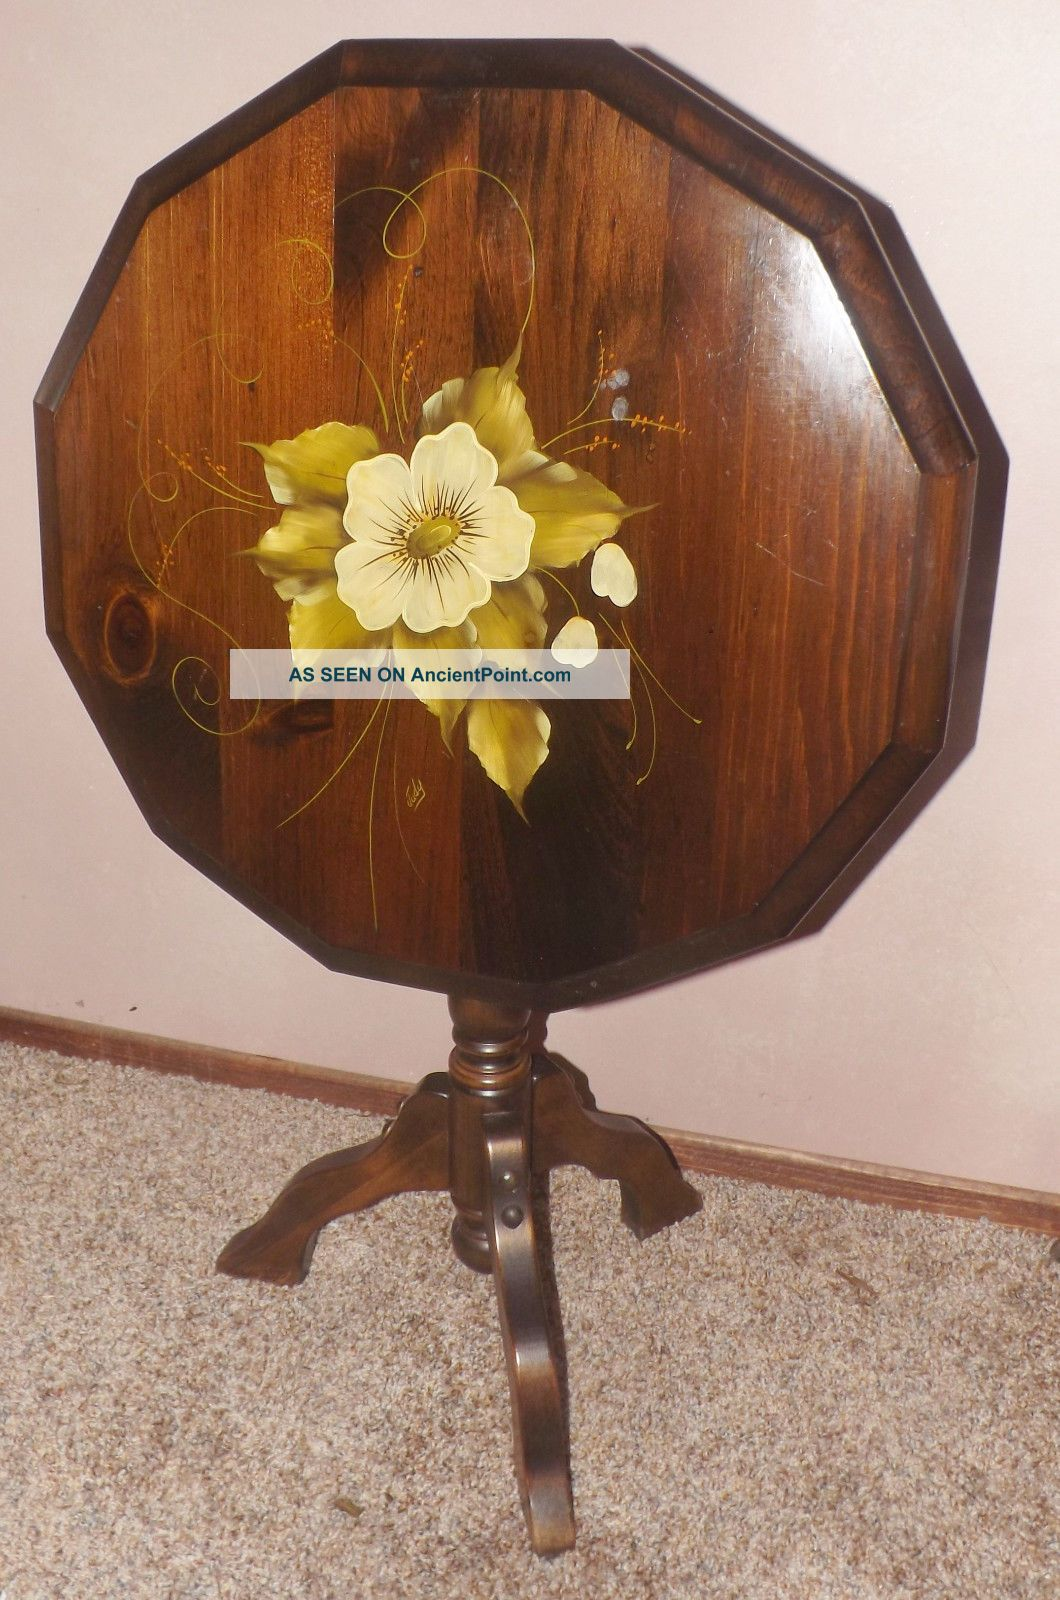 Antique Tilt Top Table Hand Painted Top Signed Dogwood Or Magnolia Flowers Unknown photo